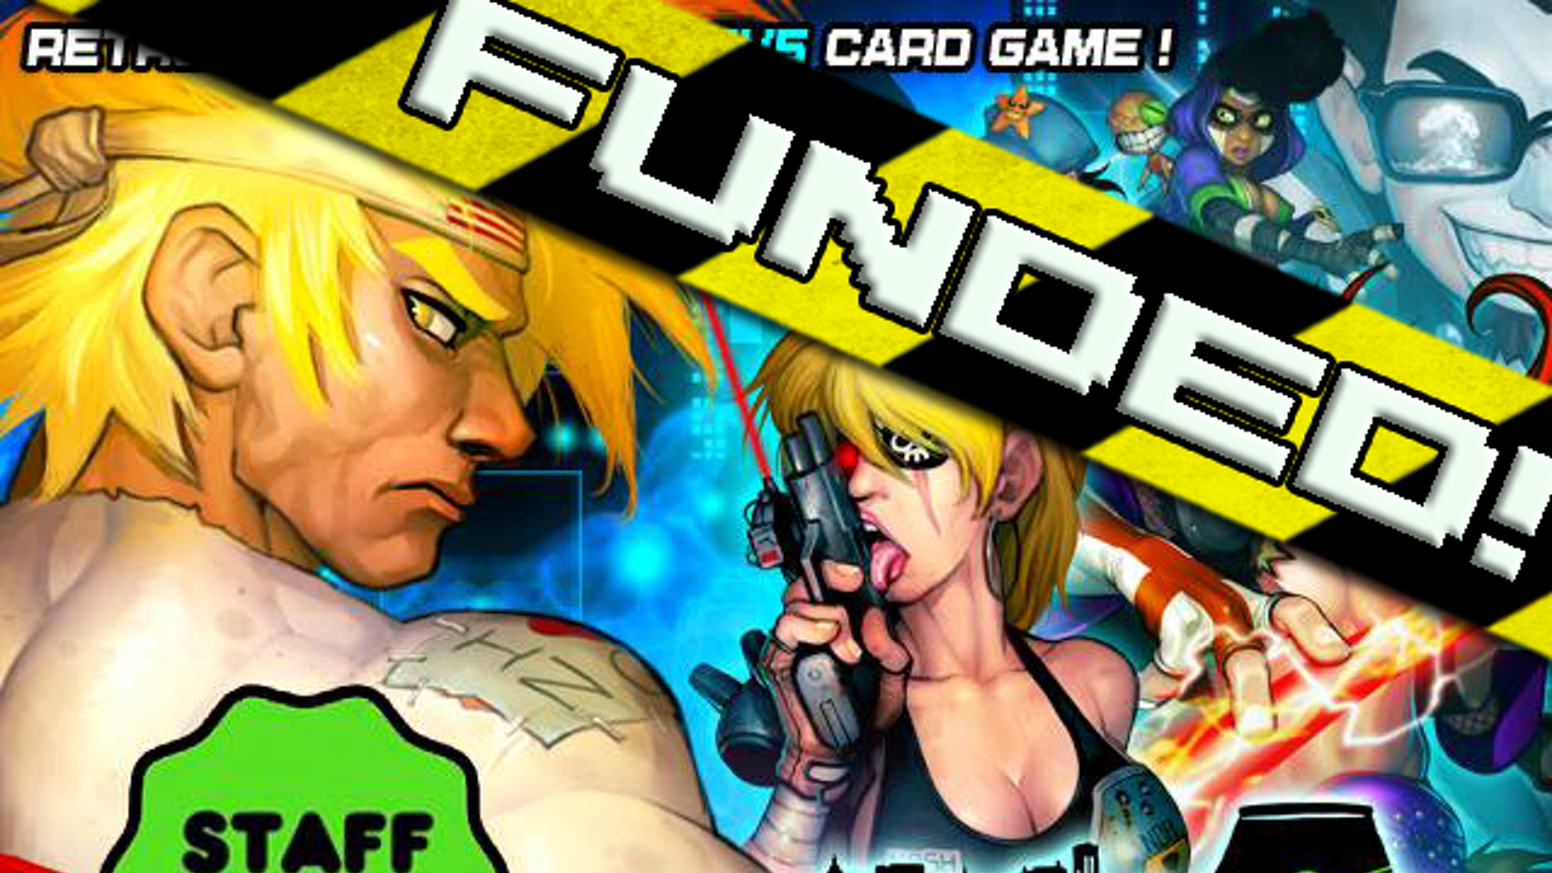 """N30N City RUMBLE is a """"beat 'em up"""" card game that simulates 5-on-5 tag team combat between mutant martial artists!"""